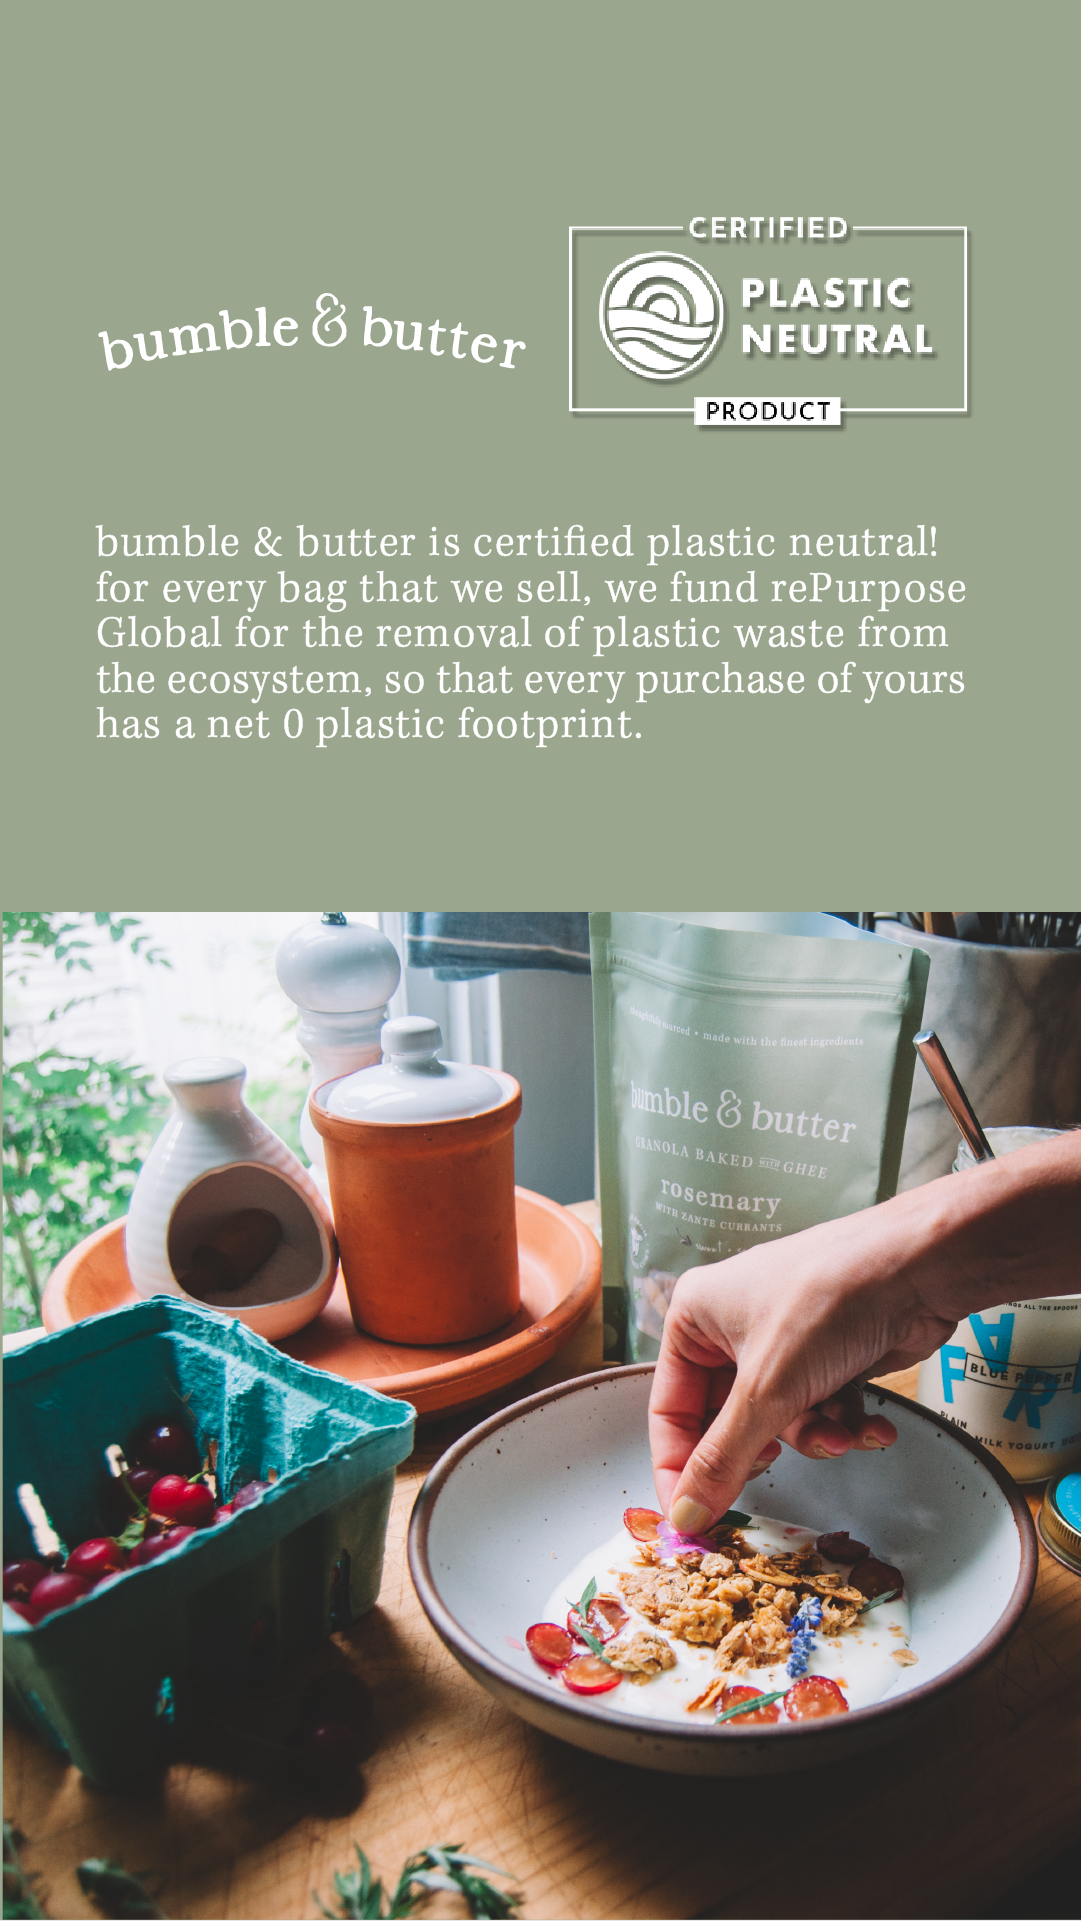 bumble & butter granola is now certified plastic neutral with rePurpose Global. For every bag you purchase, we remove a pound of plastic from our oceans.